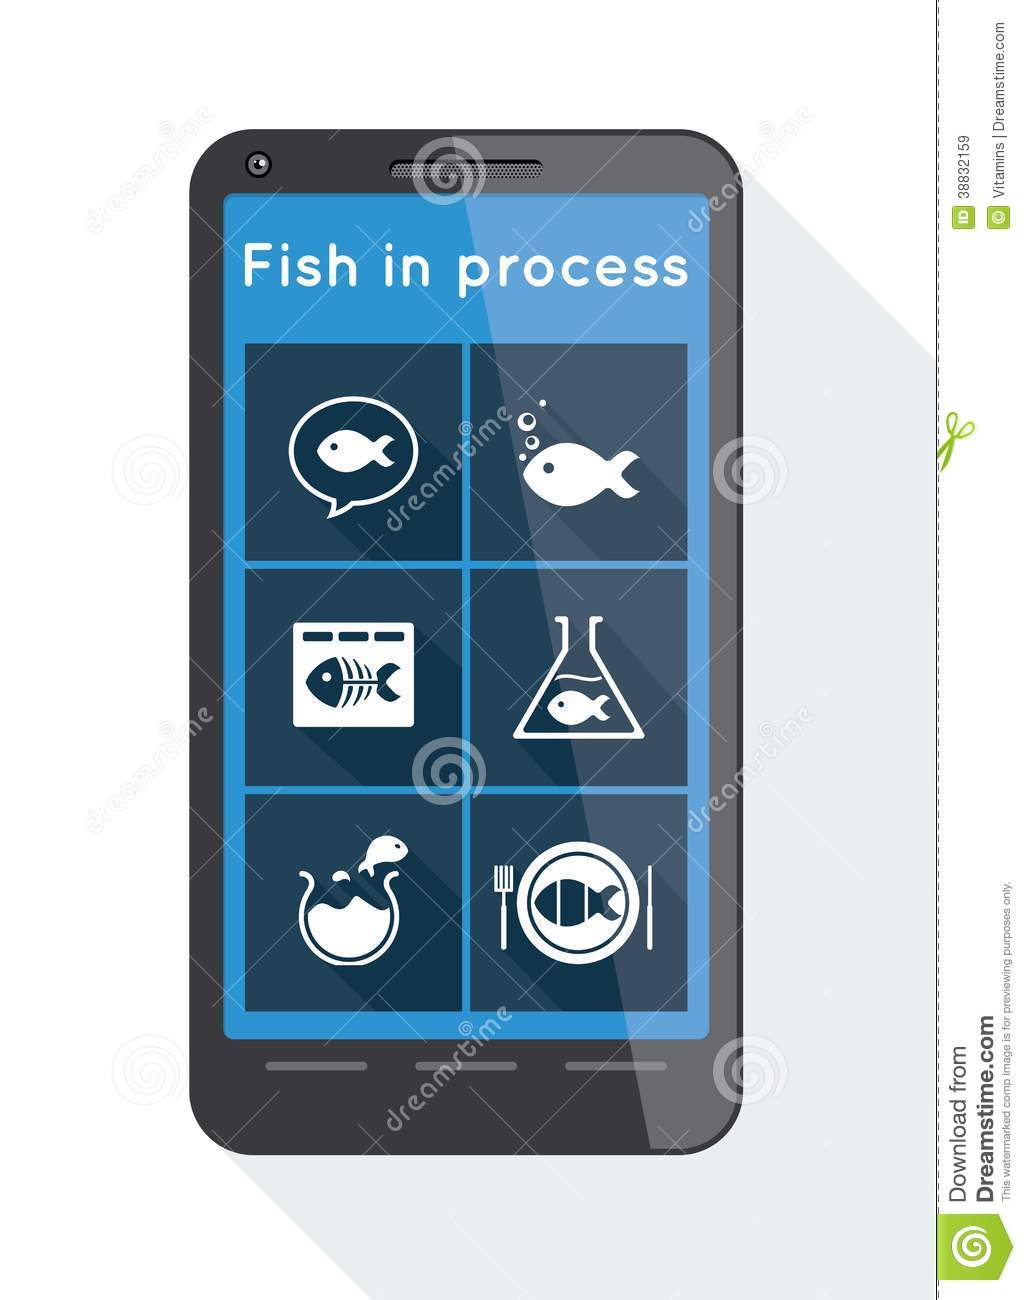 Flat menu buttons with fish icons on smartphone stock for Little fish menu